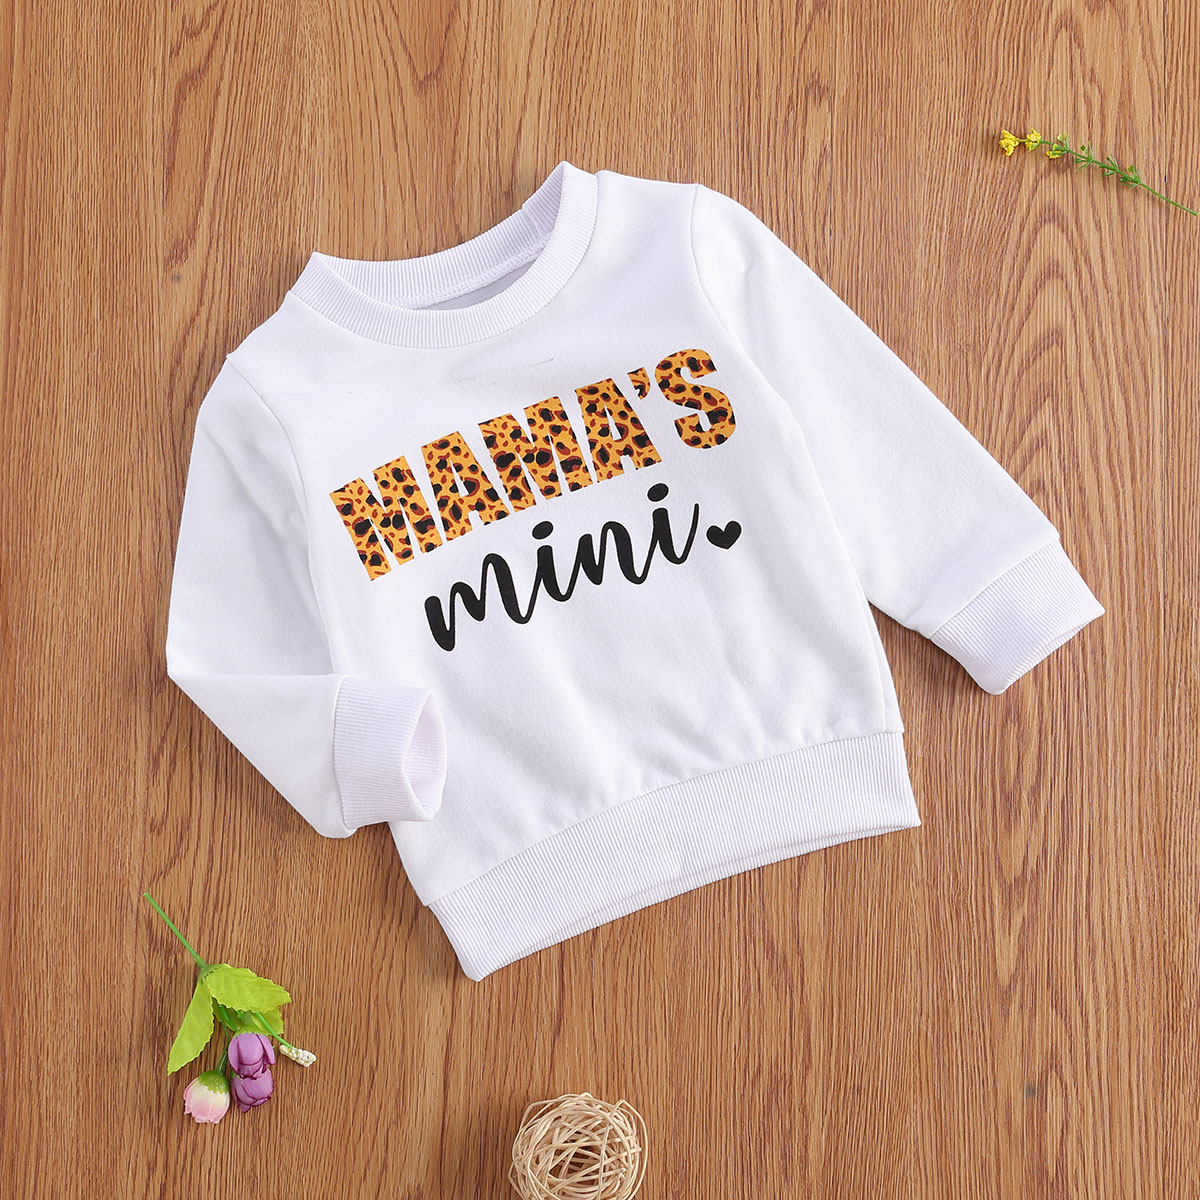 2020 Toddler Baby Girls Boys Autumn Clothes Letter Print Round Collar Long Sleeve Pullover Top Sweatshirt Outfits 0-3T Clothing 2